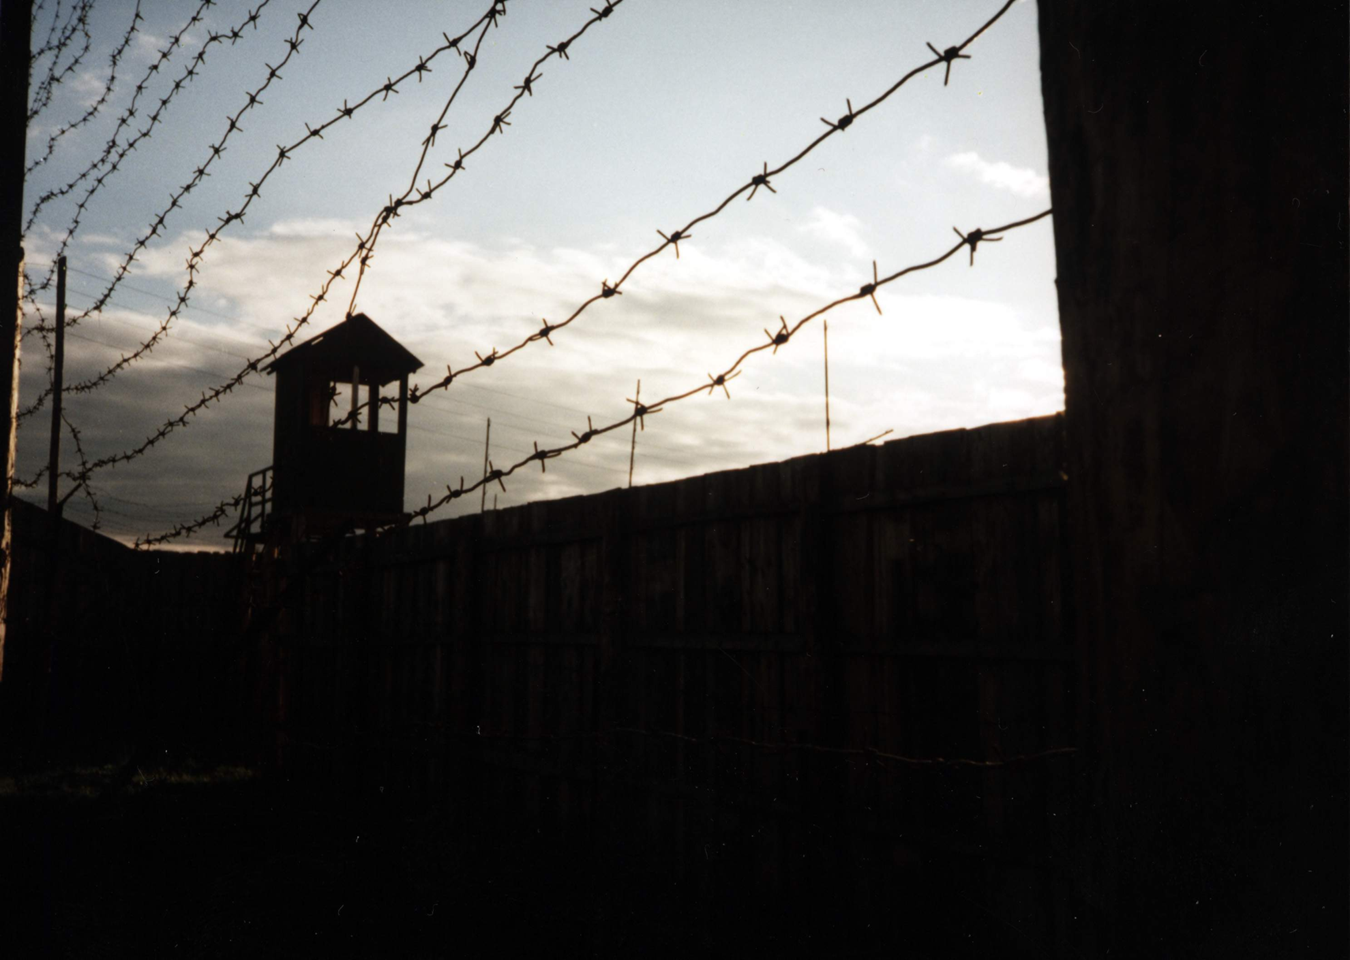 Steve Barnes: Goals for Teaching the Gulag